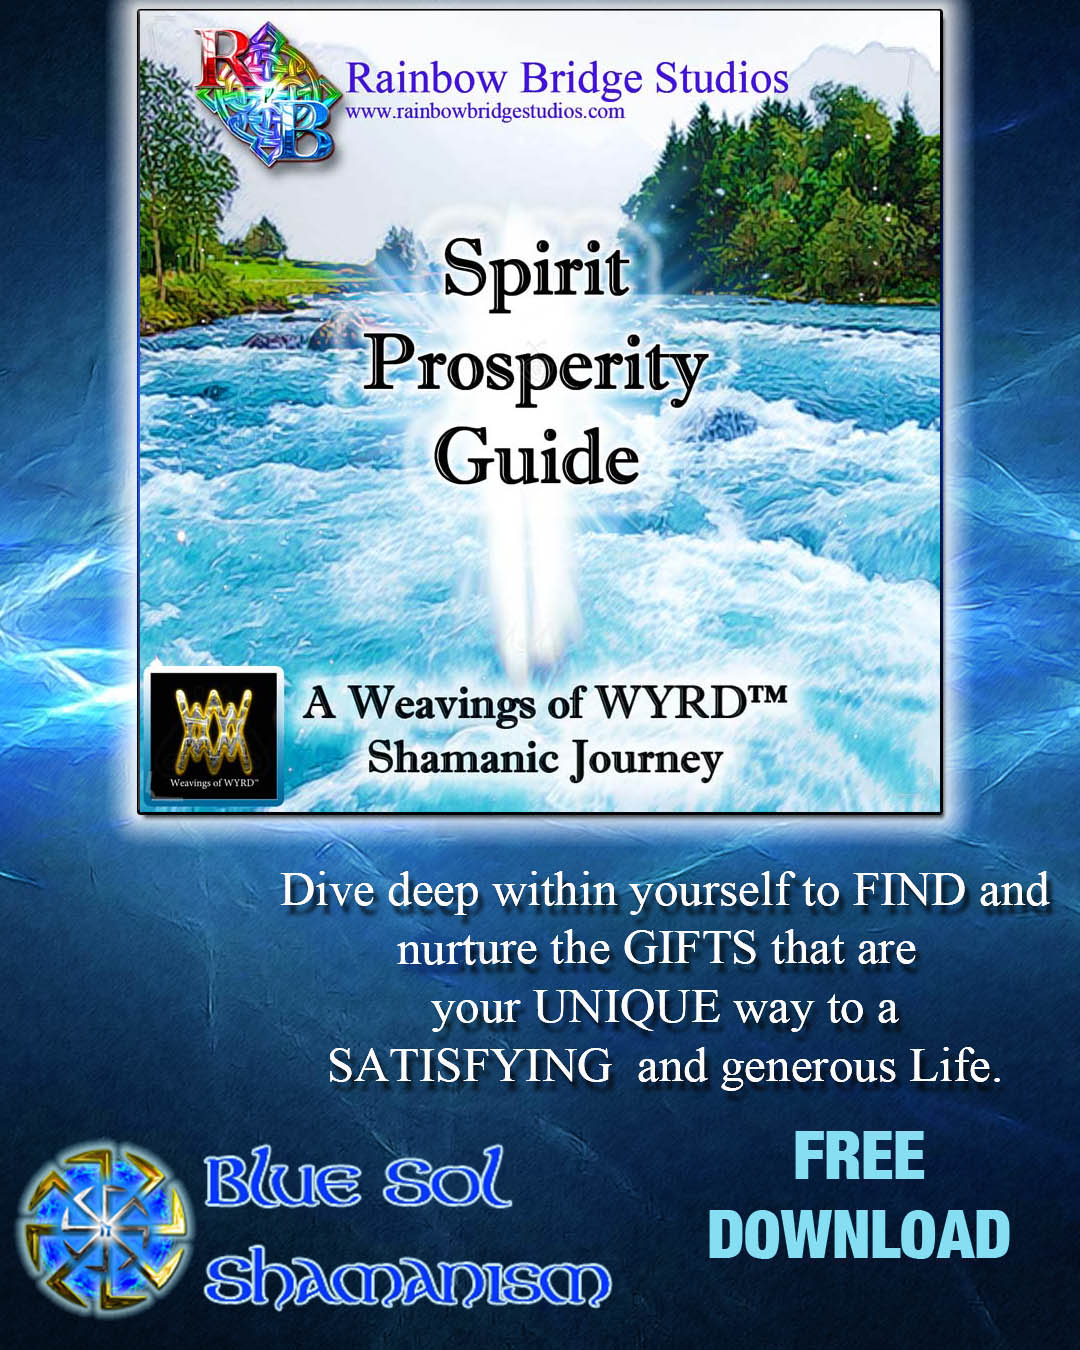 SPIRIT PROSPERITY GUIDE